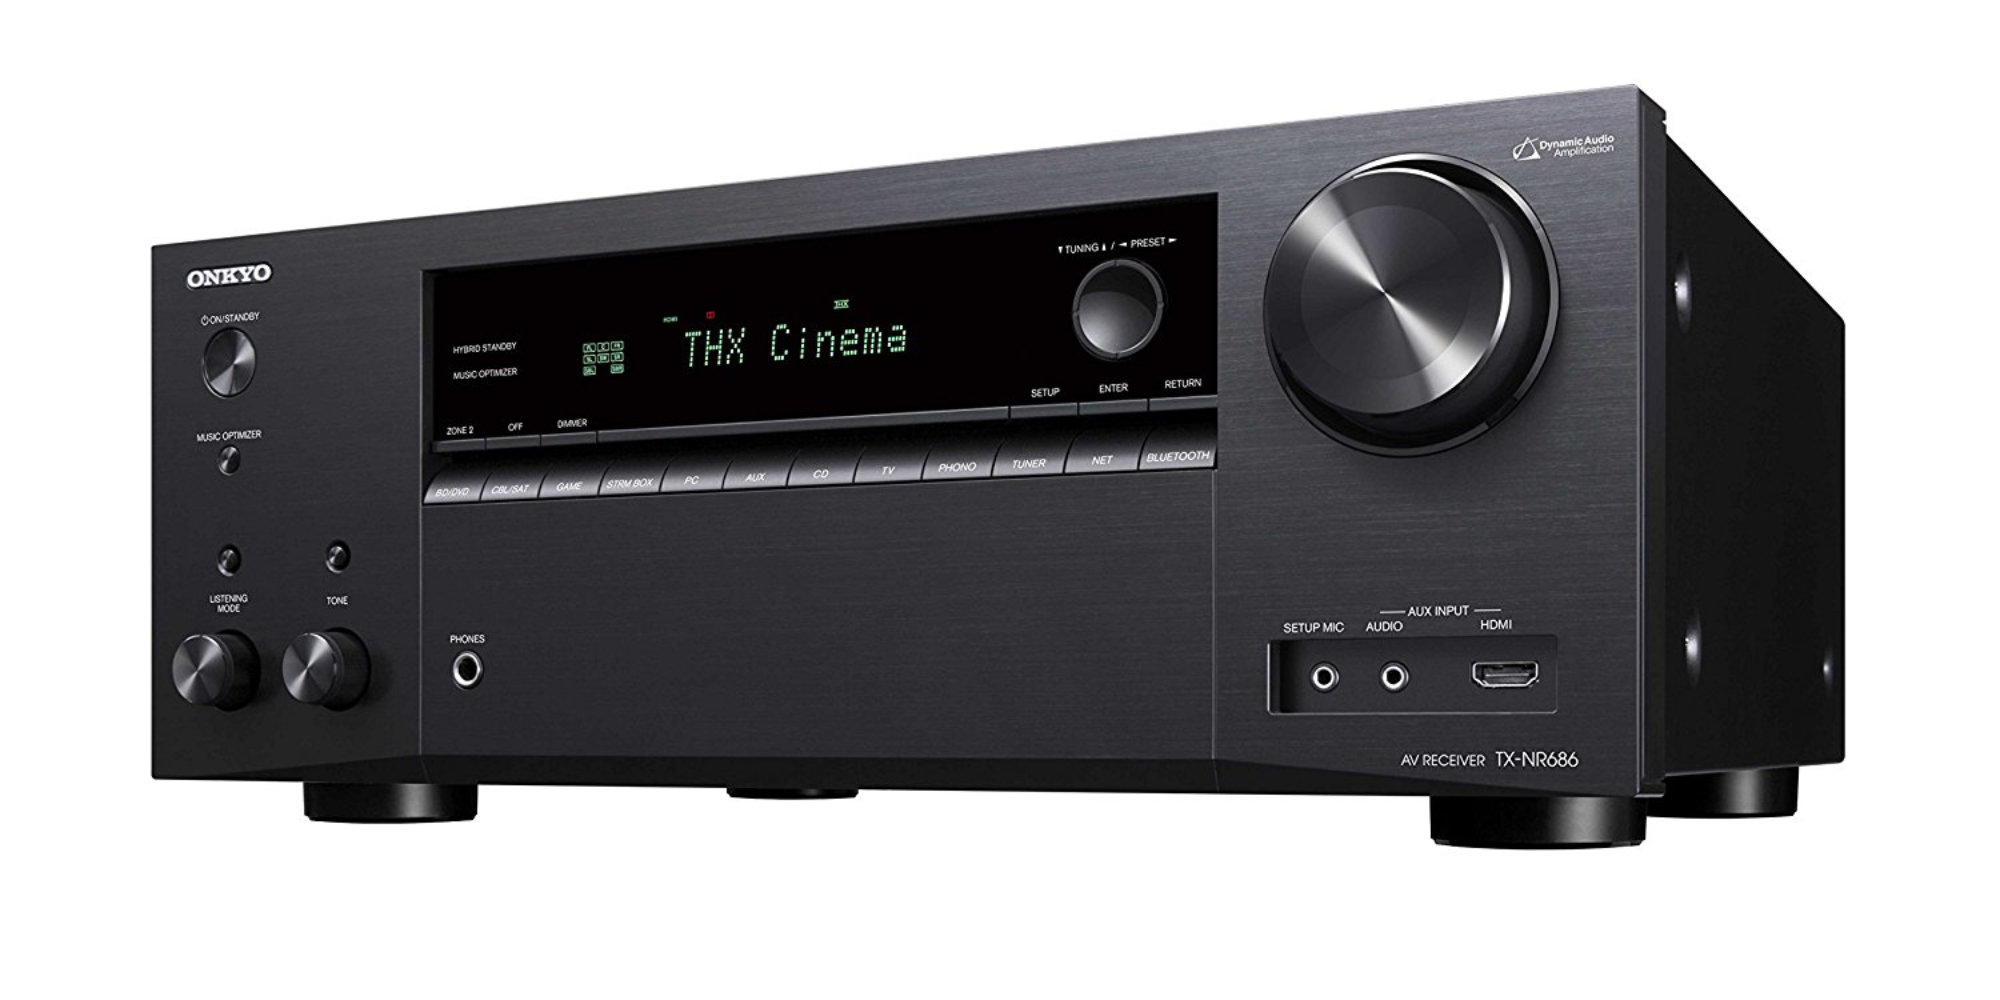 This Onkyo 7.2-Ch. AV Receiver has AirPlay & Dolby Atmos compatibility for a low of $280 (Reg. $330+)